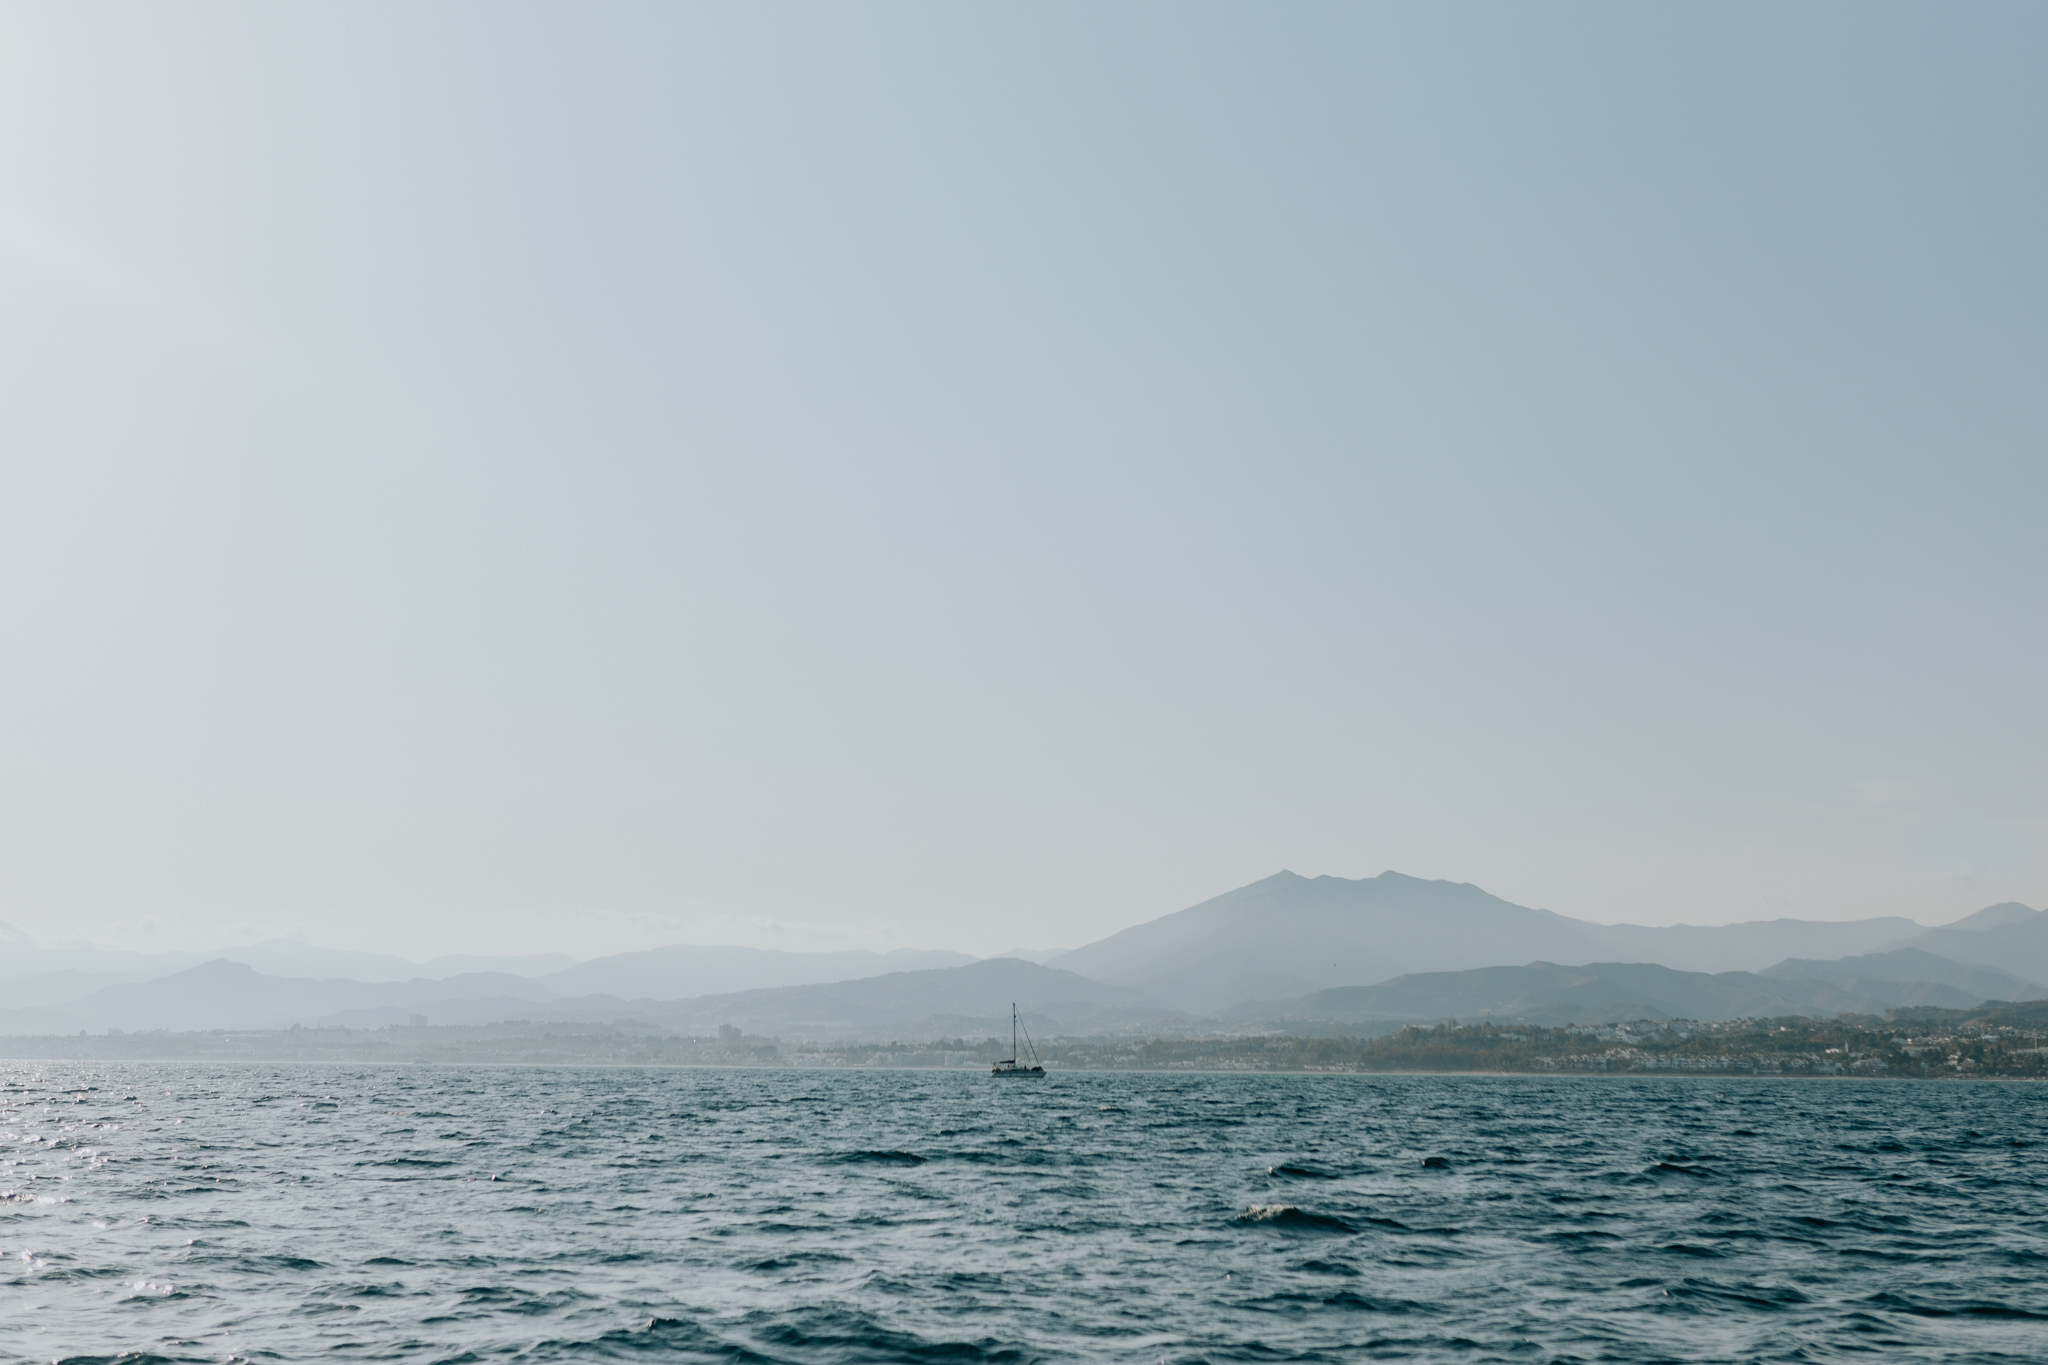 The gorgeous view from a sailboat off the coast of Marbella.